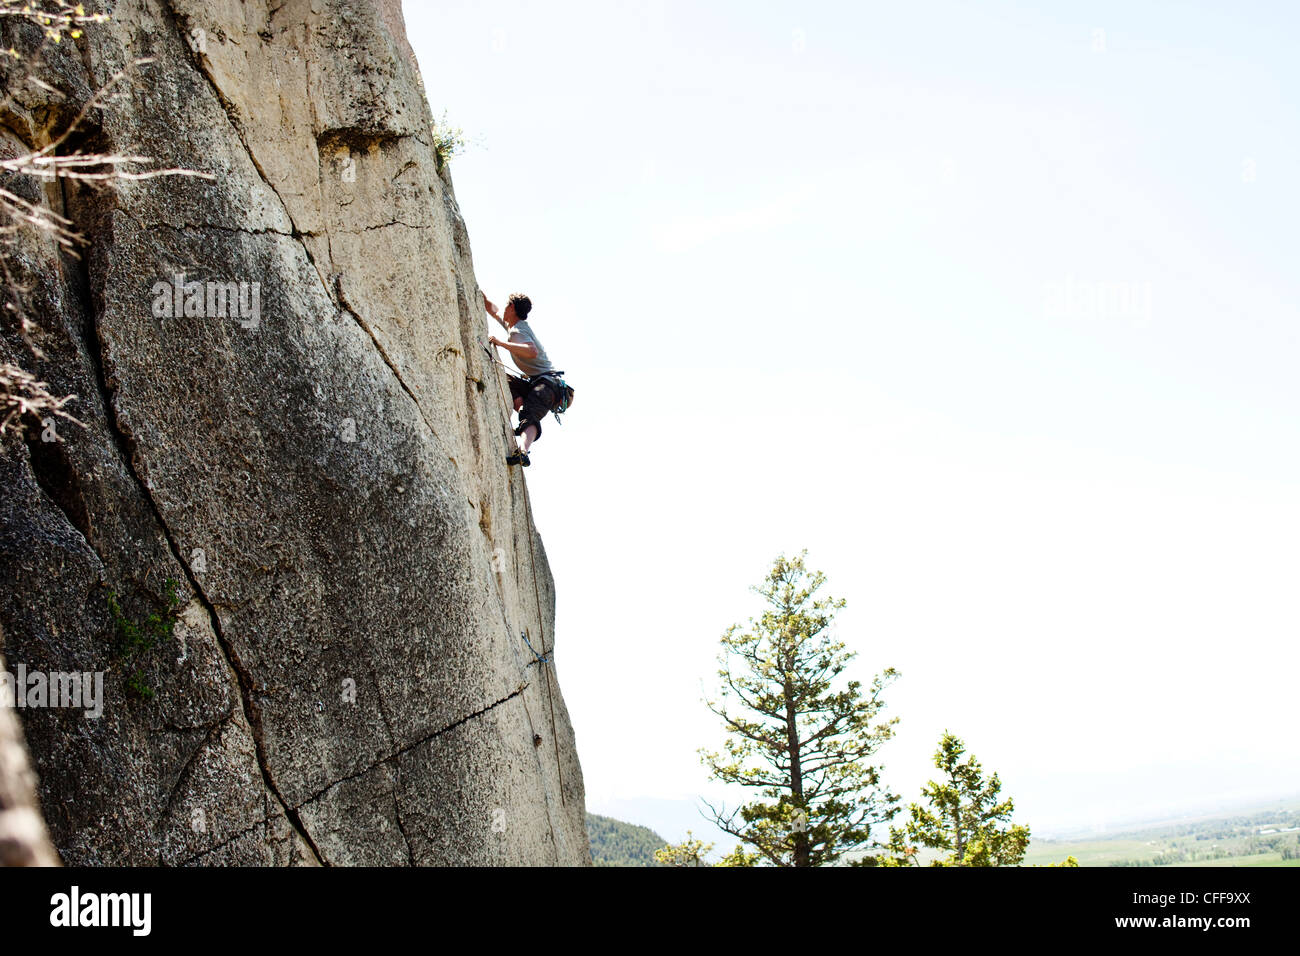 A athletic man rock climbing high off the ground in Montana. - Stock Image